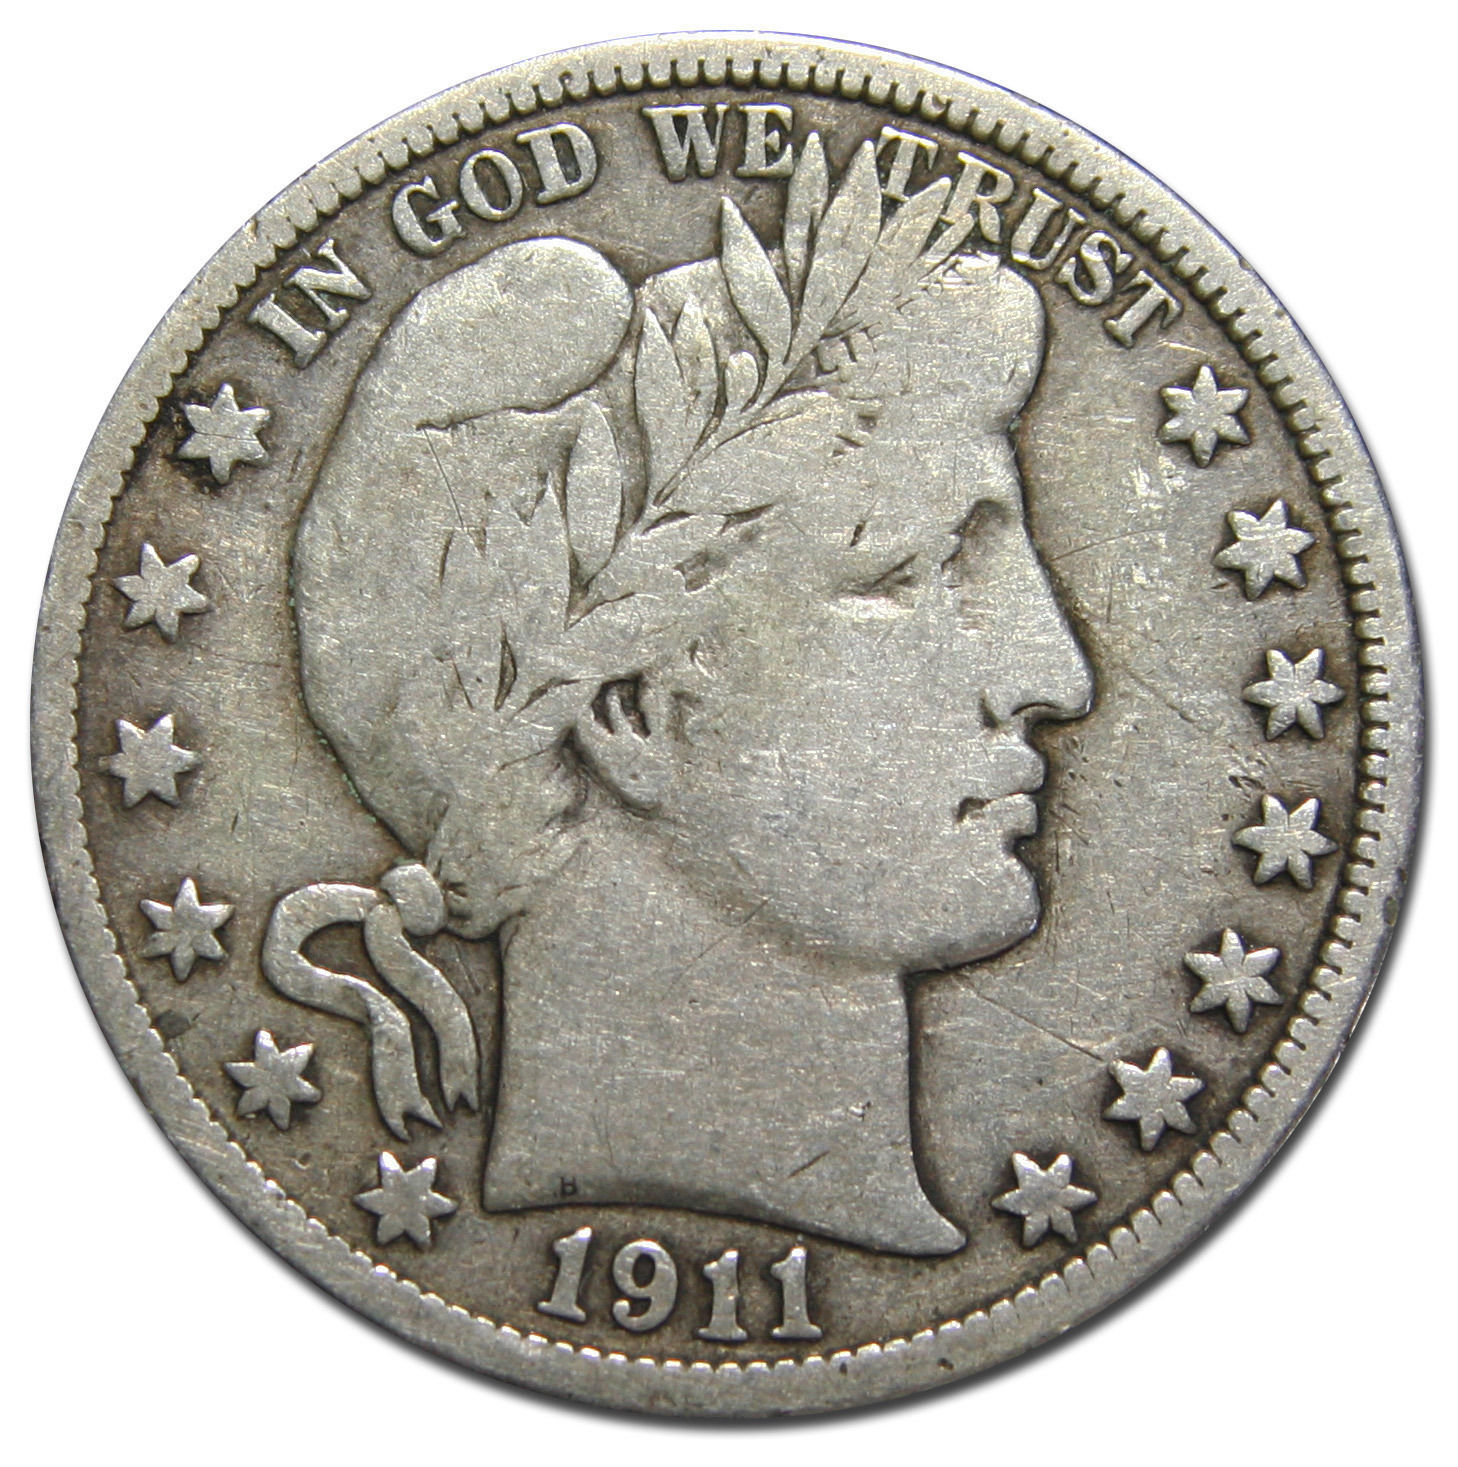 1911 Liberty Barber Head Half Dollar 50¢ Silver Coin Lot MZ 3141